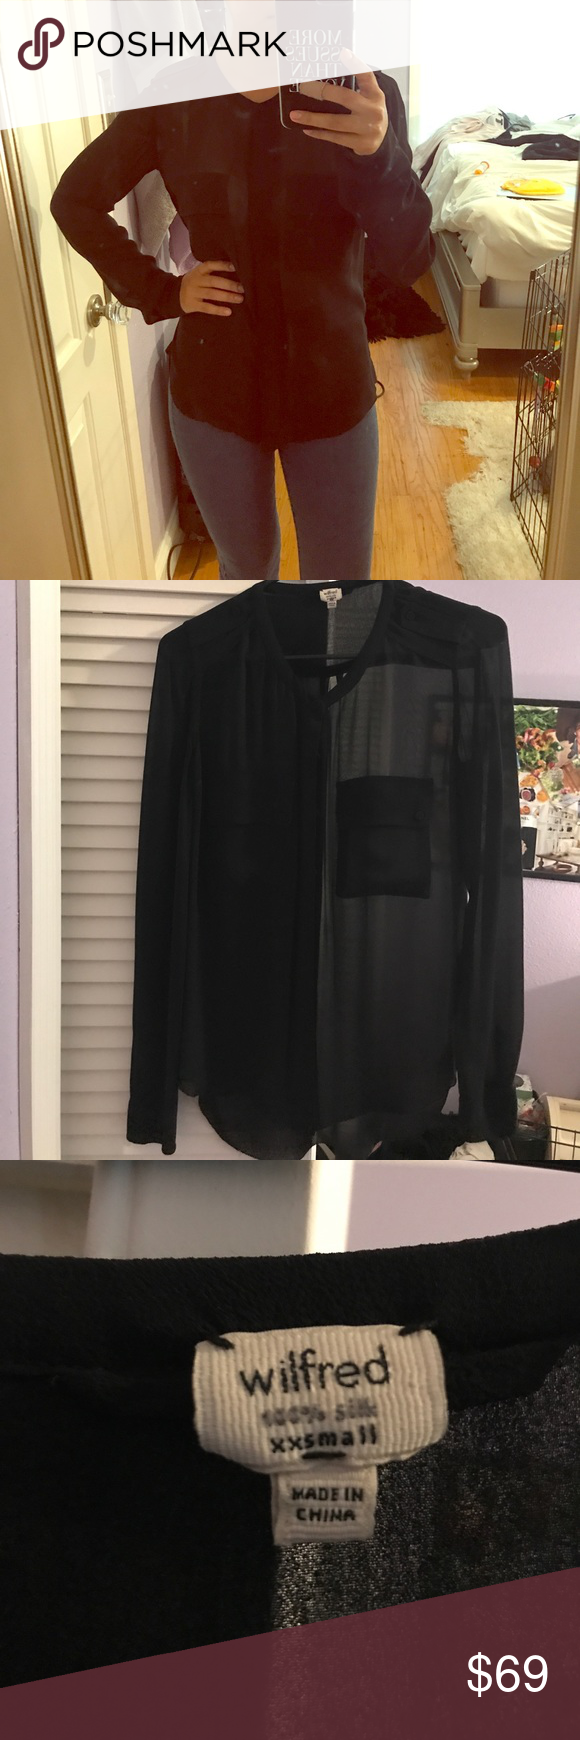 4c9bac22f1c399 Aritzia Wilfred Silk Blouse size XXS beautiful 100% silk Wilfred Aritzia  blouse. Excellent condition. Check out the rest of my closet! Wilfred Tops  Blouses